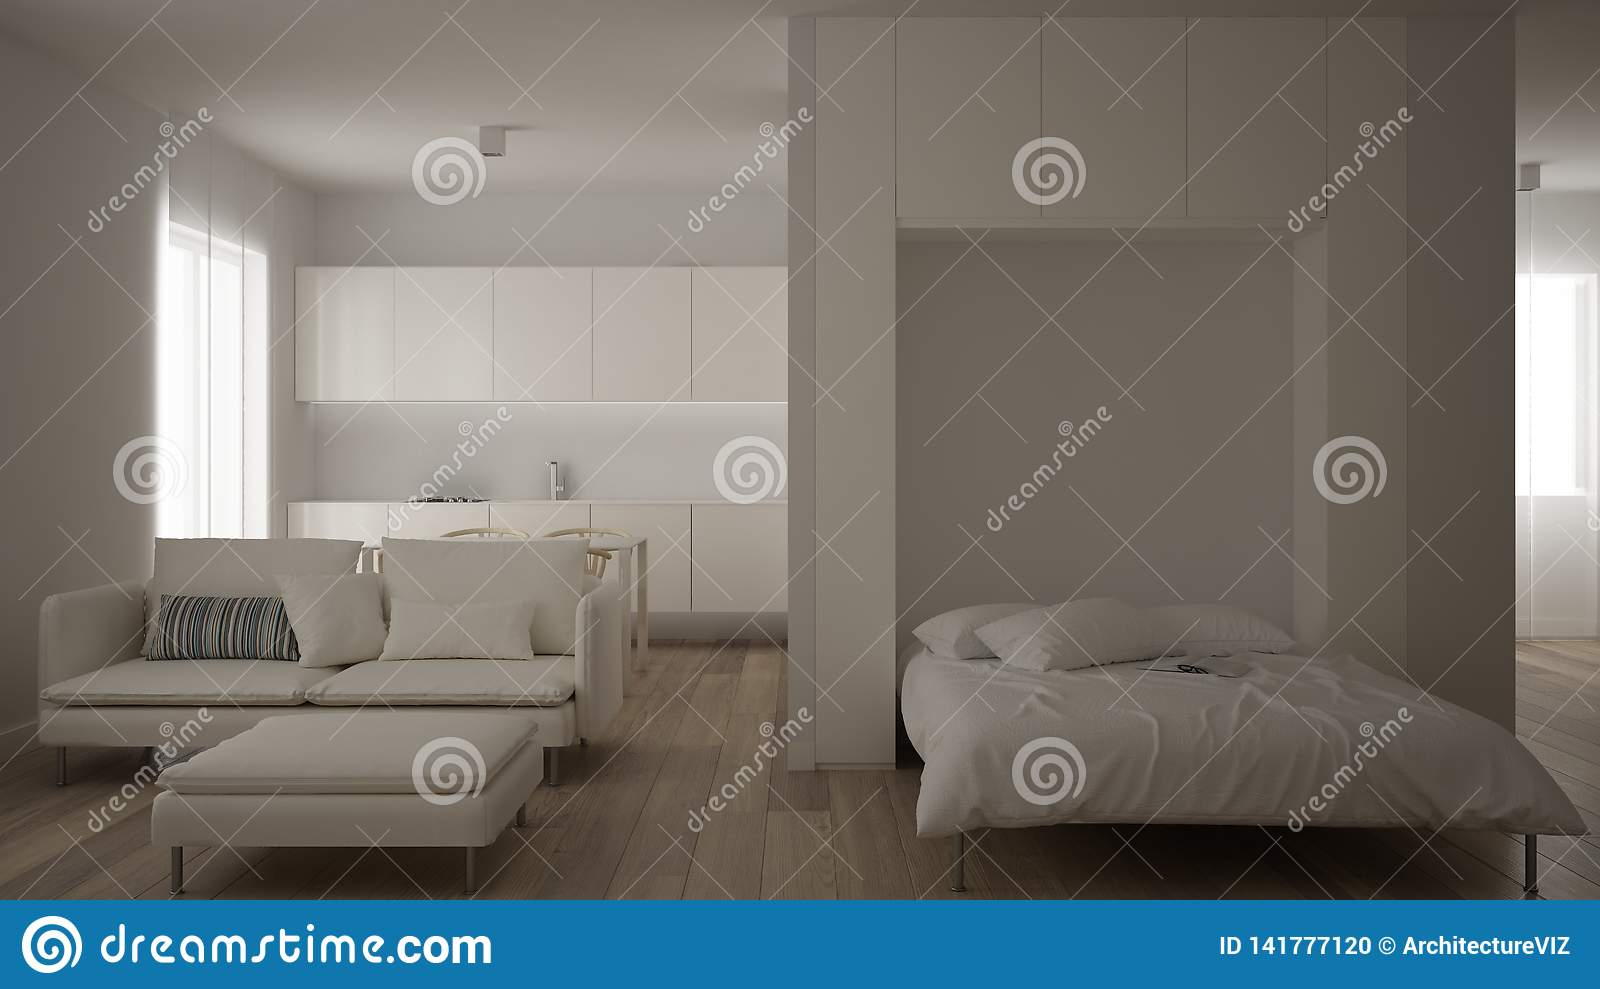 Small Apartment One Room With Parquet Floor Kitchen With Dining Table Murphy Bed Living Room Minimalist Style Modern Stock Illustration Illustration Of Fancy Contemporary 141777120